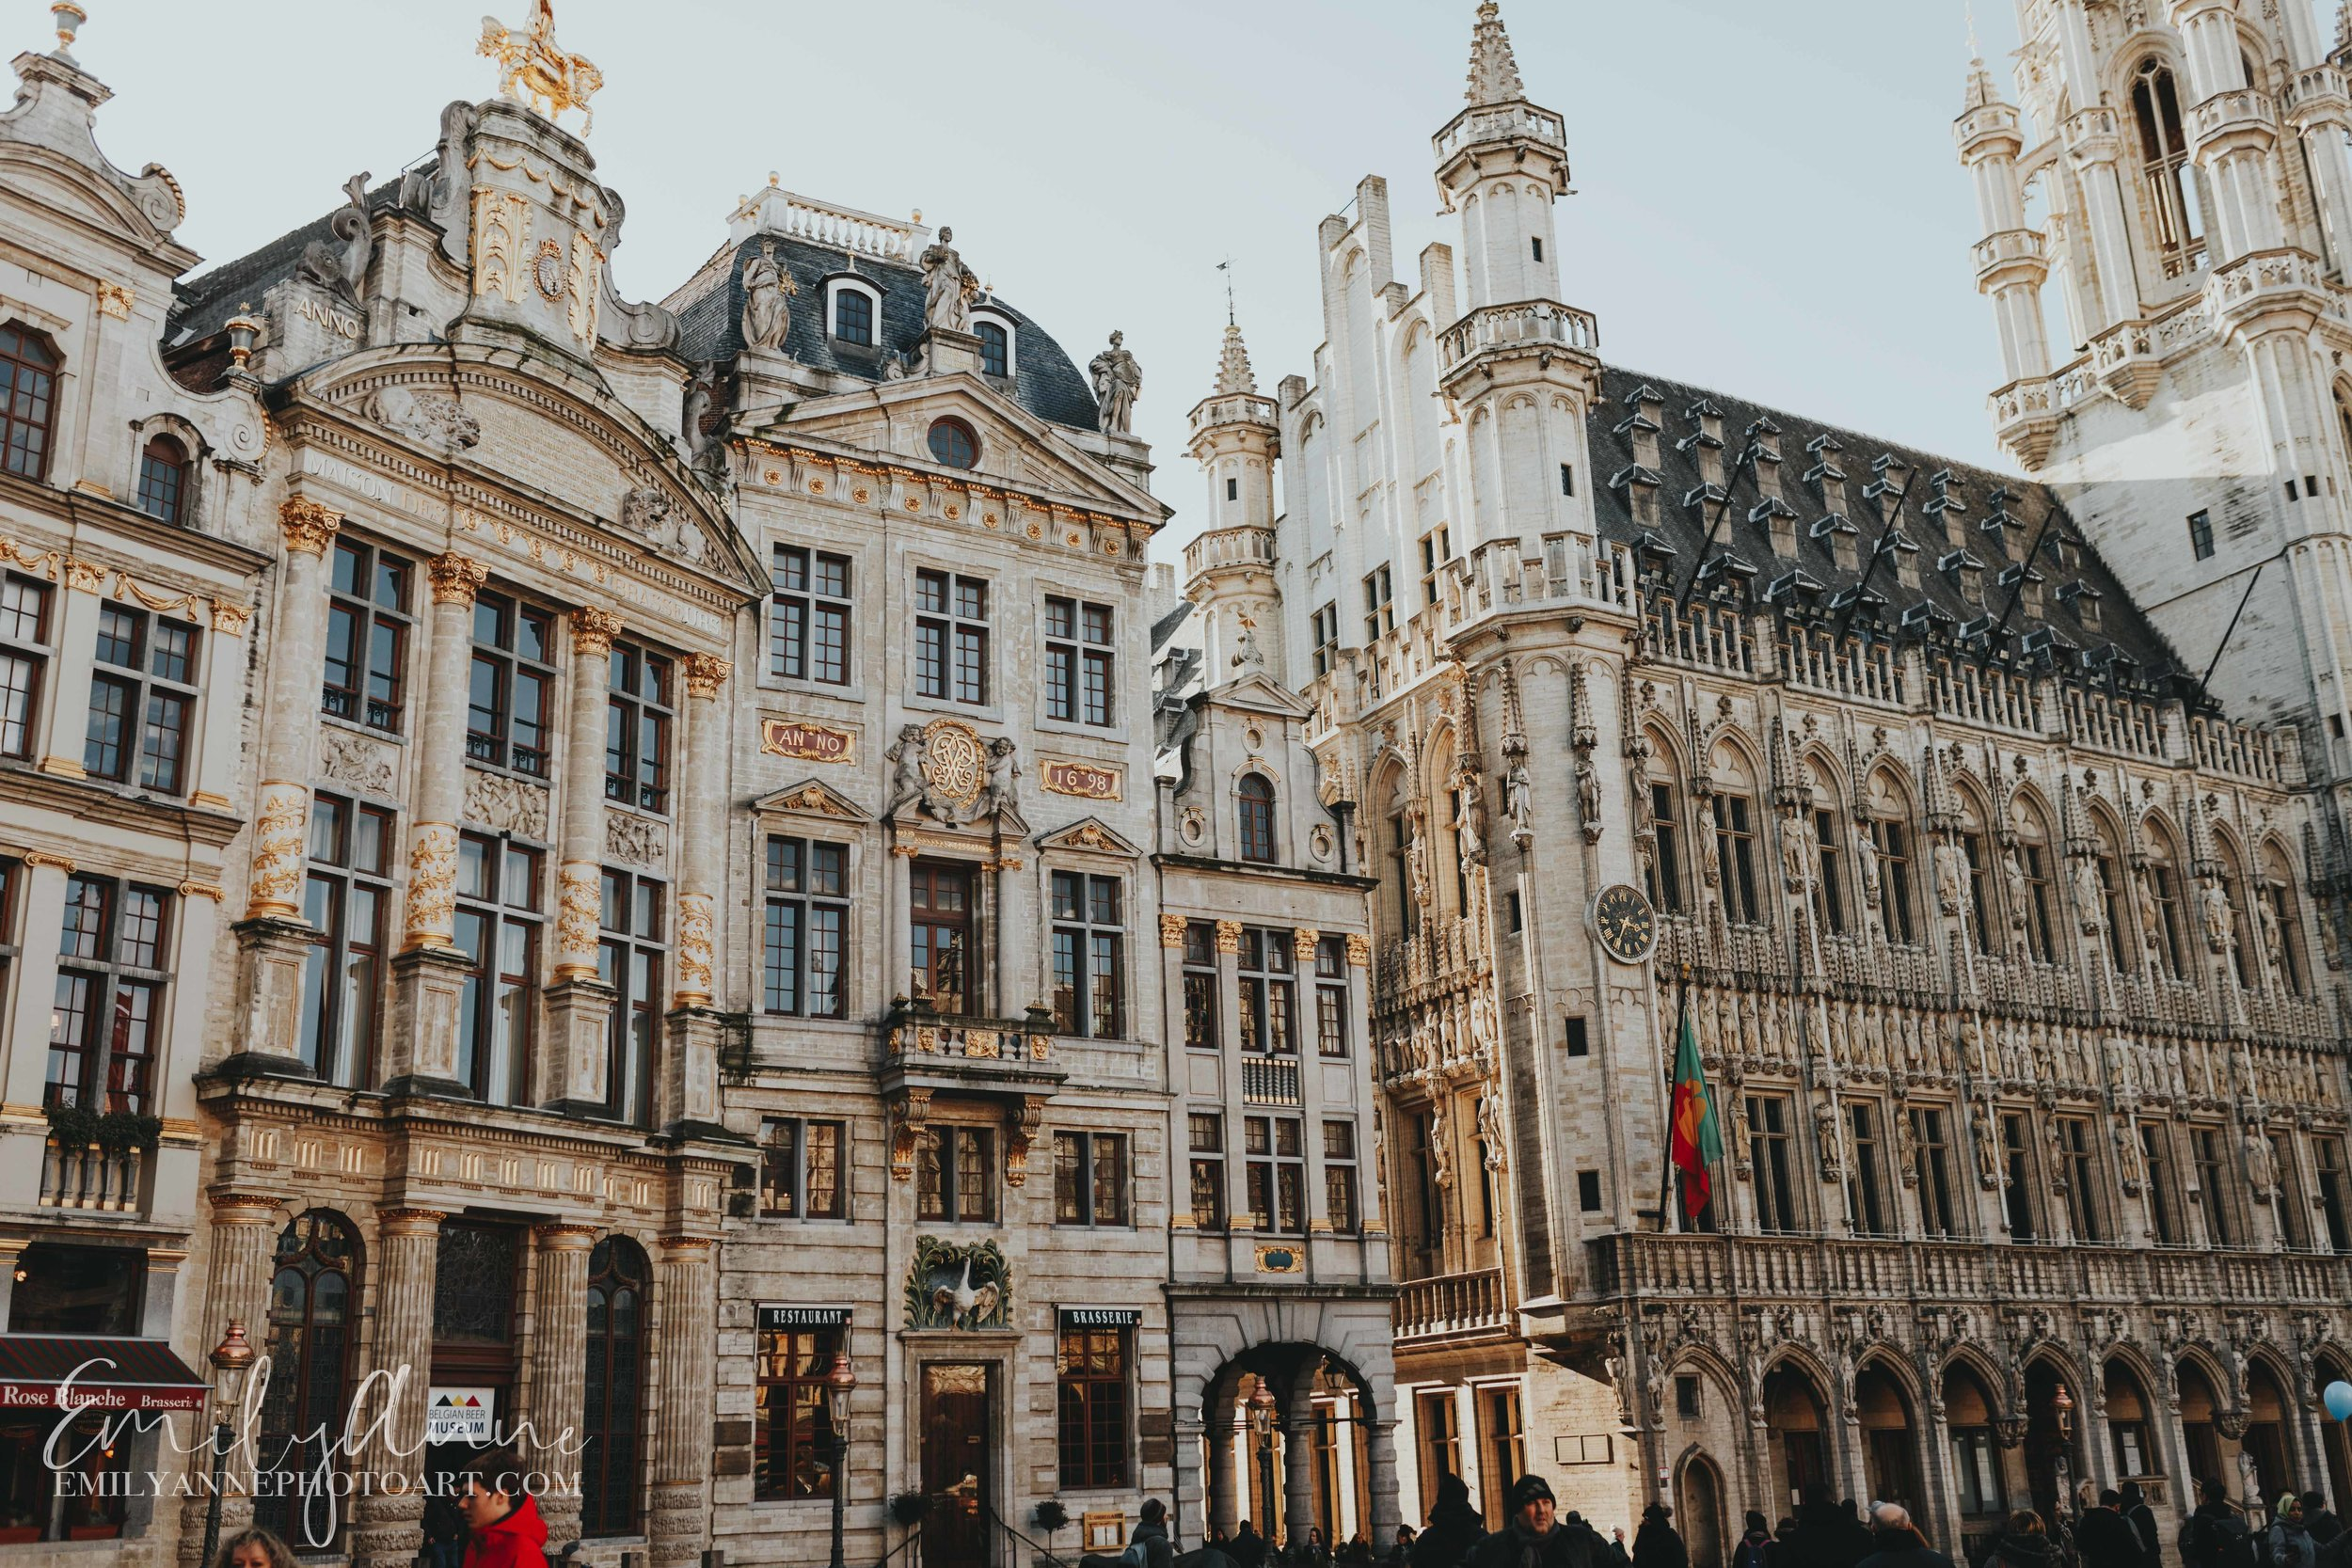 Grand Place Central Market Town Hall of Brussels - Top places to visit in Belgium - Best of Belgium by Belgian Portrait & Wedding Photographer Emily Anne